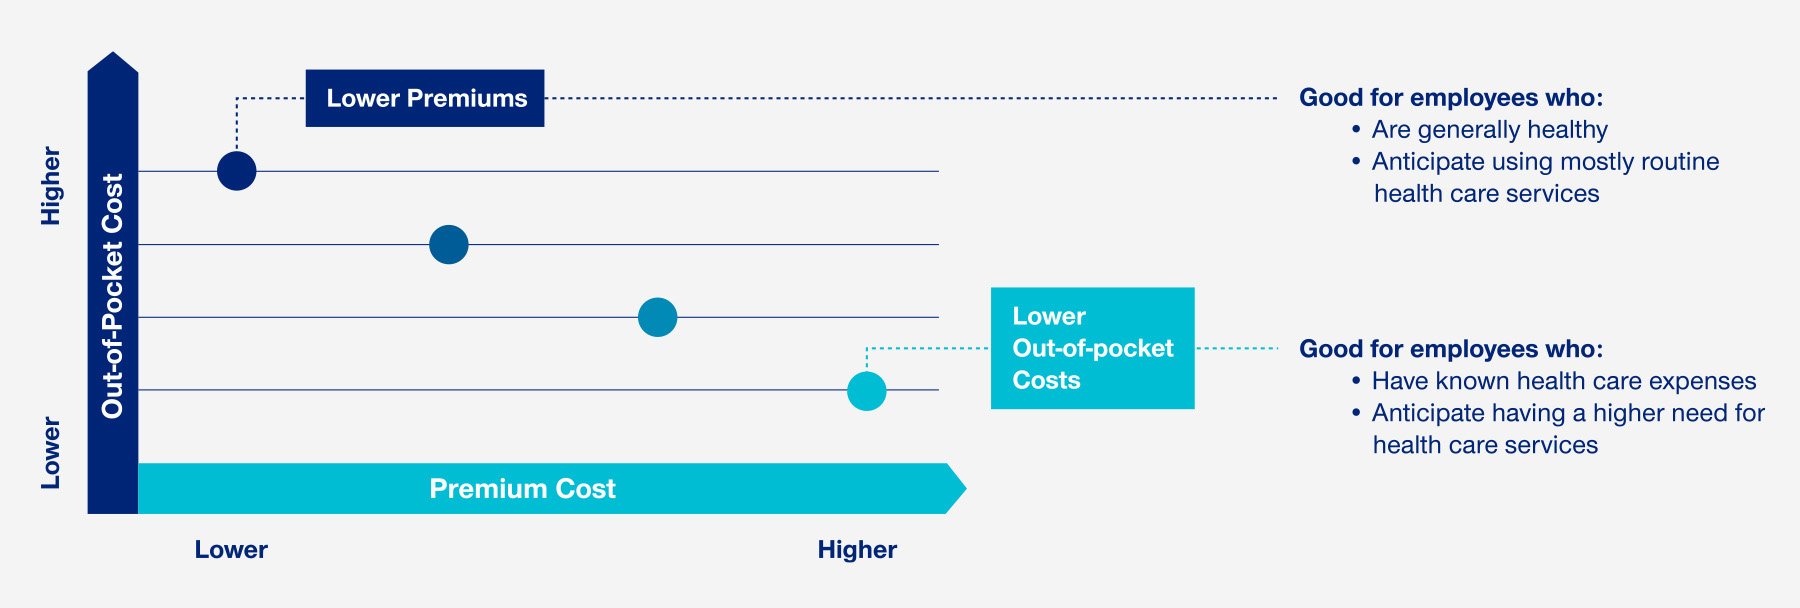 Info graphic displaying the general principle that lower premiums have higher out-of-pocket costs and high premiums have lower out-of-pocket costs.